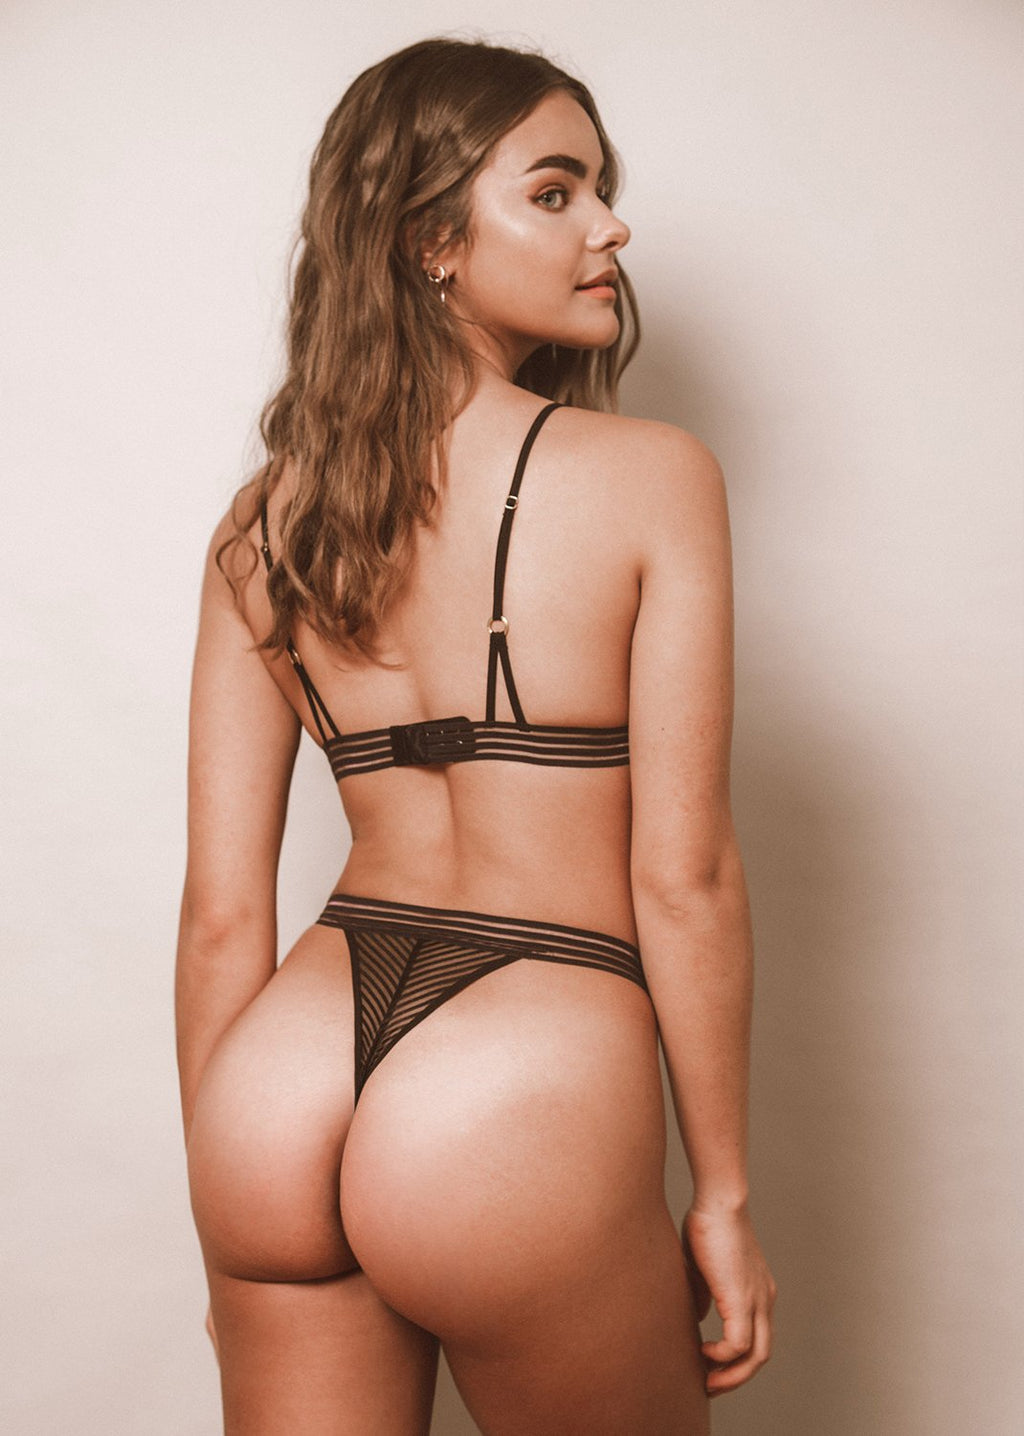 Strip(e) That Down Thong - LEONESSA Lingerie